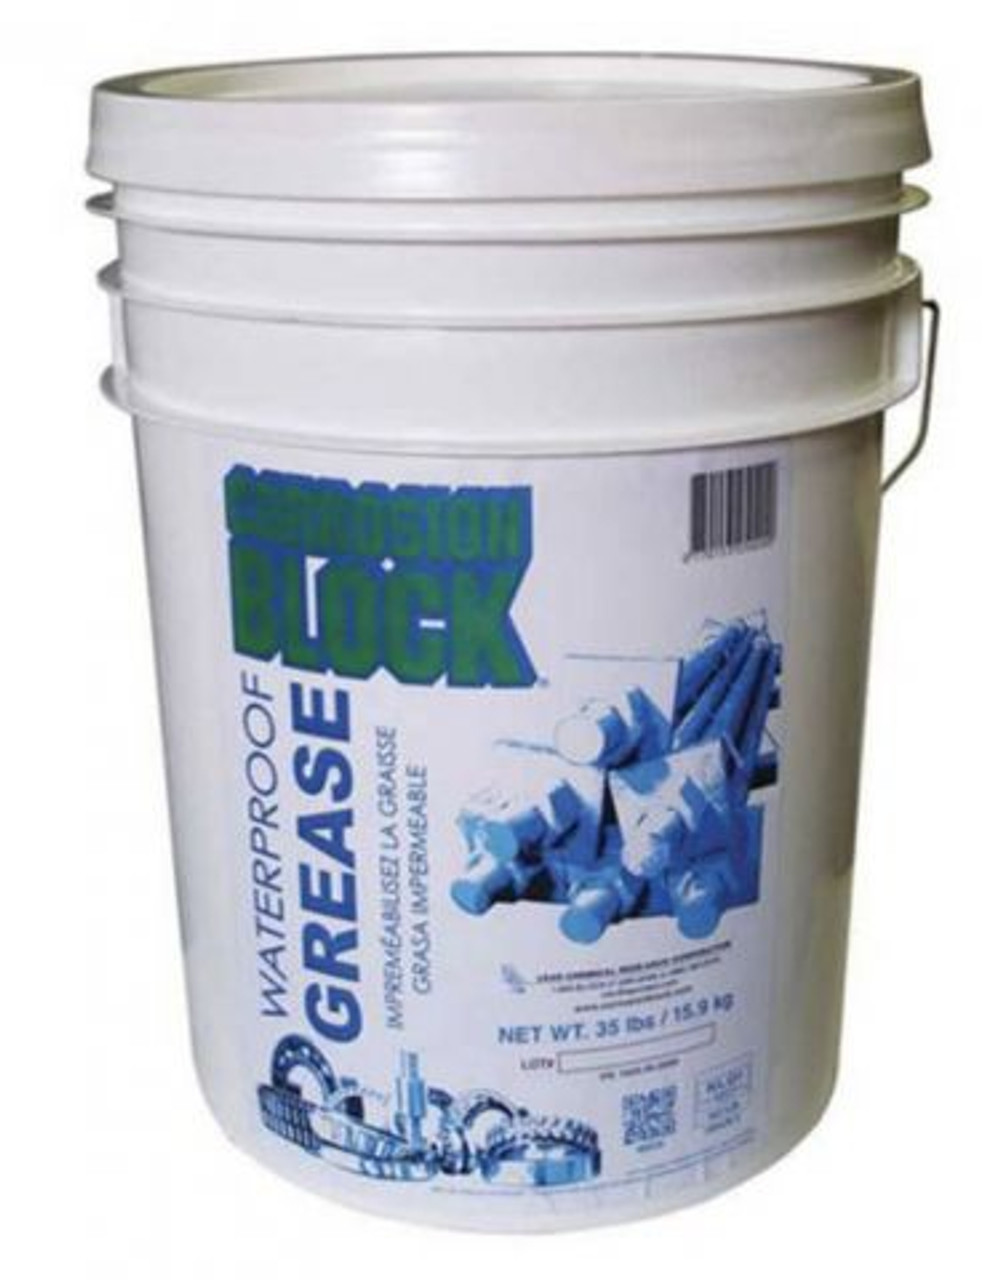 Waterproof Corrosion Block Grease 35 lbs Can Part# 25020 by Lear Chemical Corrosion Block Greaseis designed to provide maximum protection under severe conditions. Its formulation provides both high and low-temperature performance, increasing the service life of critical components including in aircraft along with aircraft ground support equipment .Corrosion Block Greasestrongly resists water washout and provides superior protection against rust and corrosion.Corrosion Block Greaseoutperforms lithium and most synthetic greases and meets or exceeds requirements for NLGI Service Classification GC-LB (automotive wheel bearing and chassis lubricants), which is based on ASTM D4950 performance requirements.